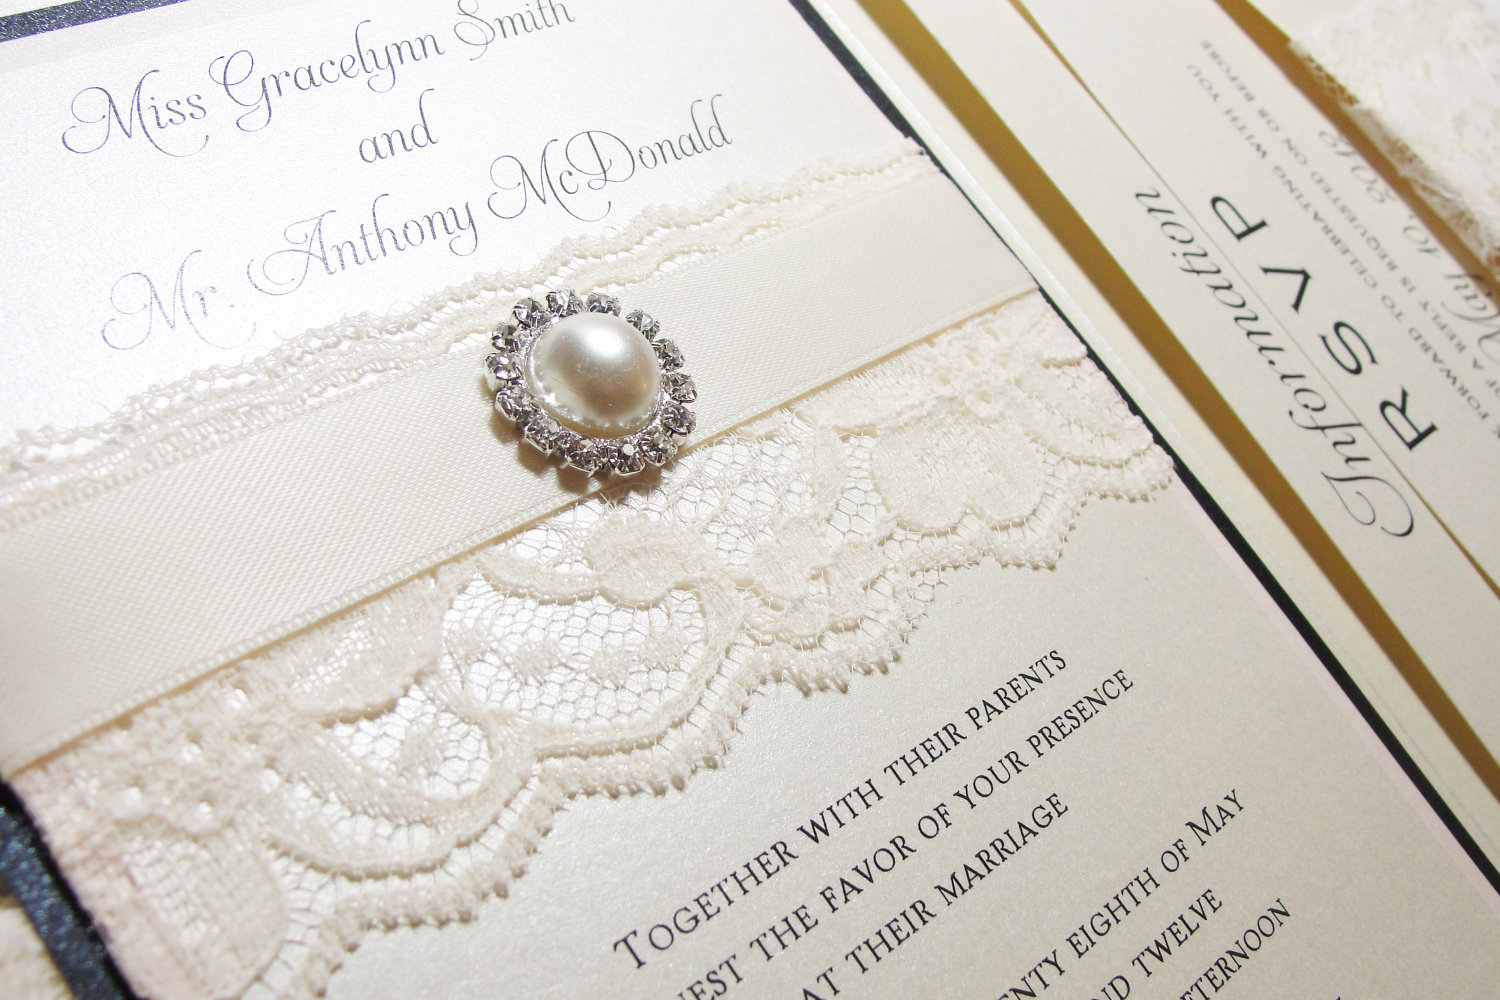 Traditional Elegant Wedding Invitations With Lace Pearls Onewed.com ...